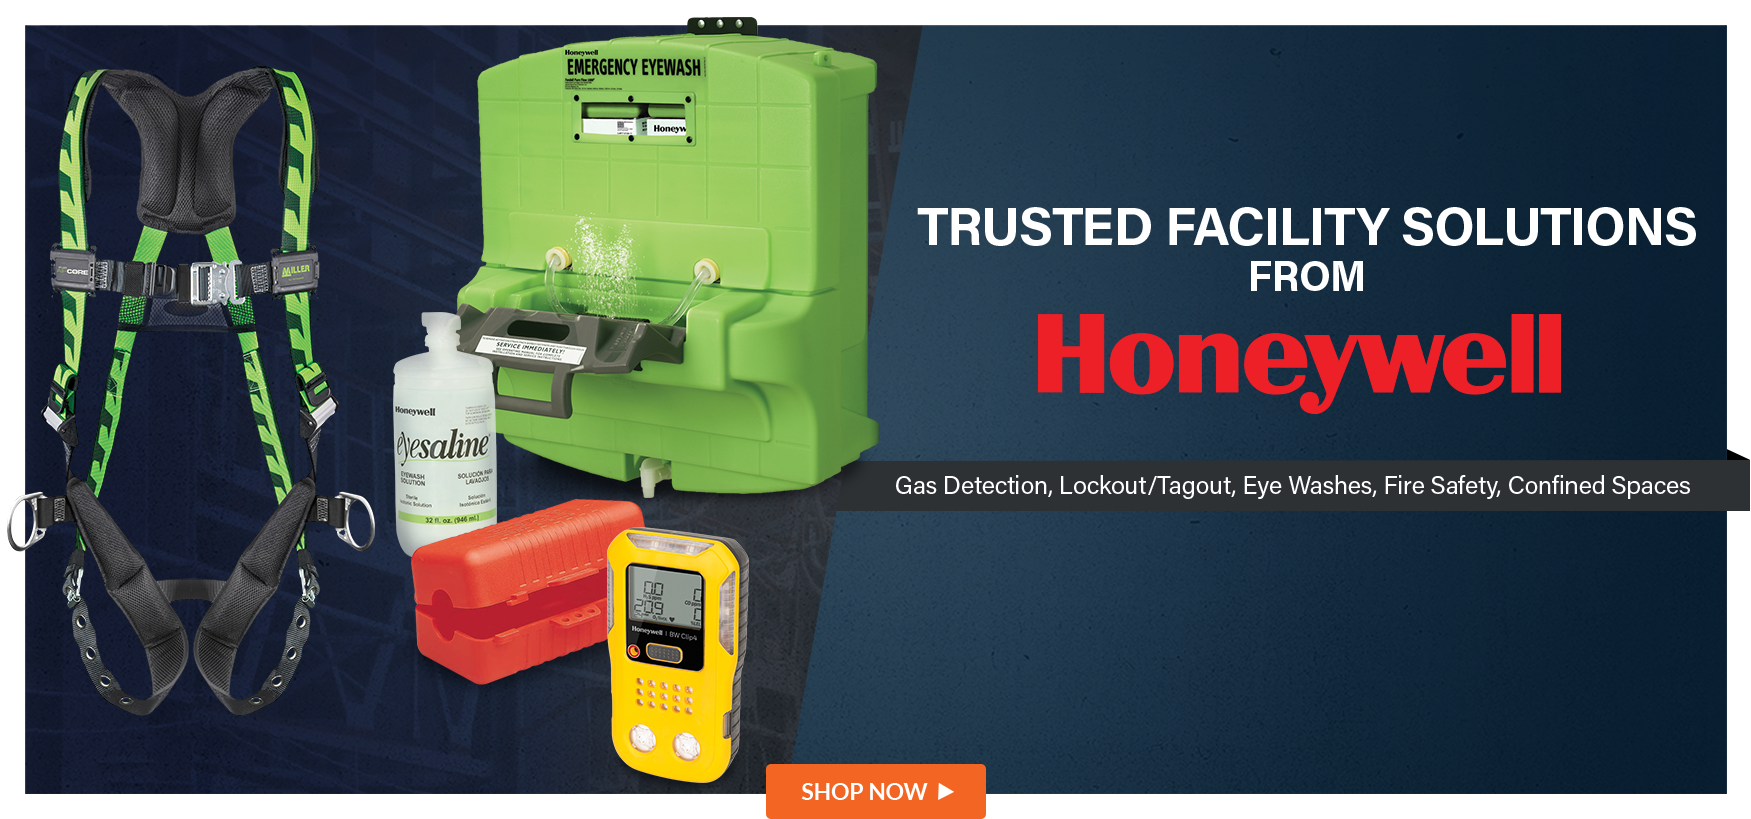 Trusted Facility Solutions from Honeywell